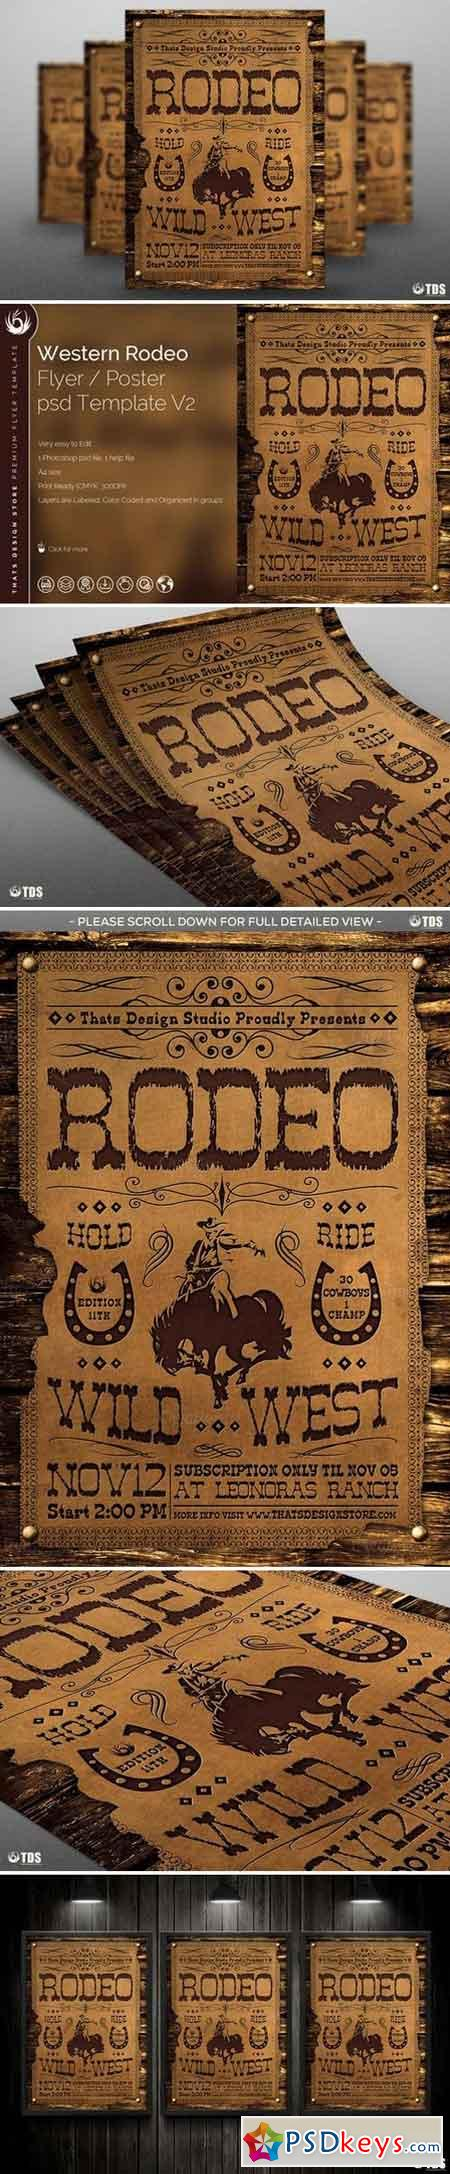 Western Rodeo Flyer Template V2 529000